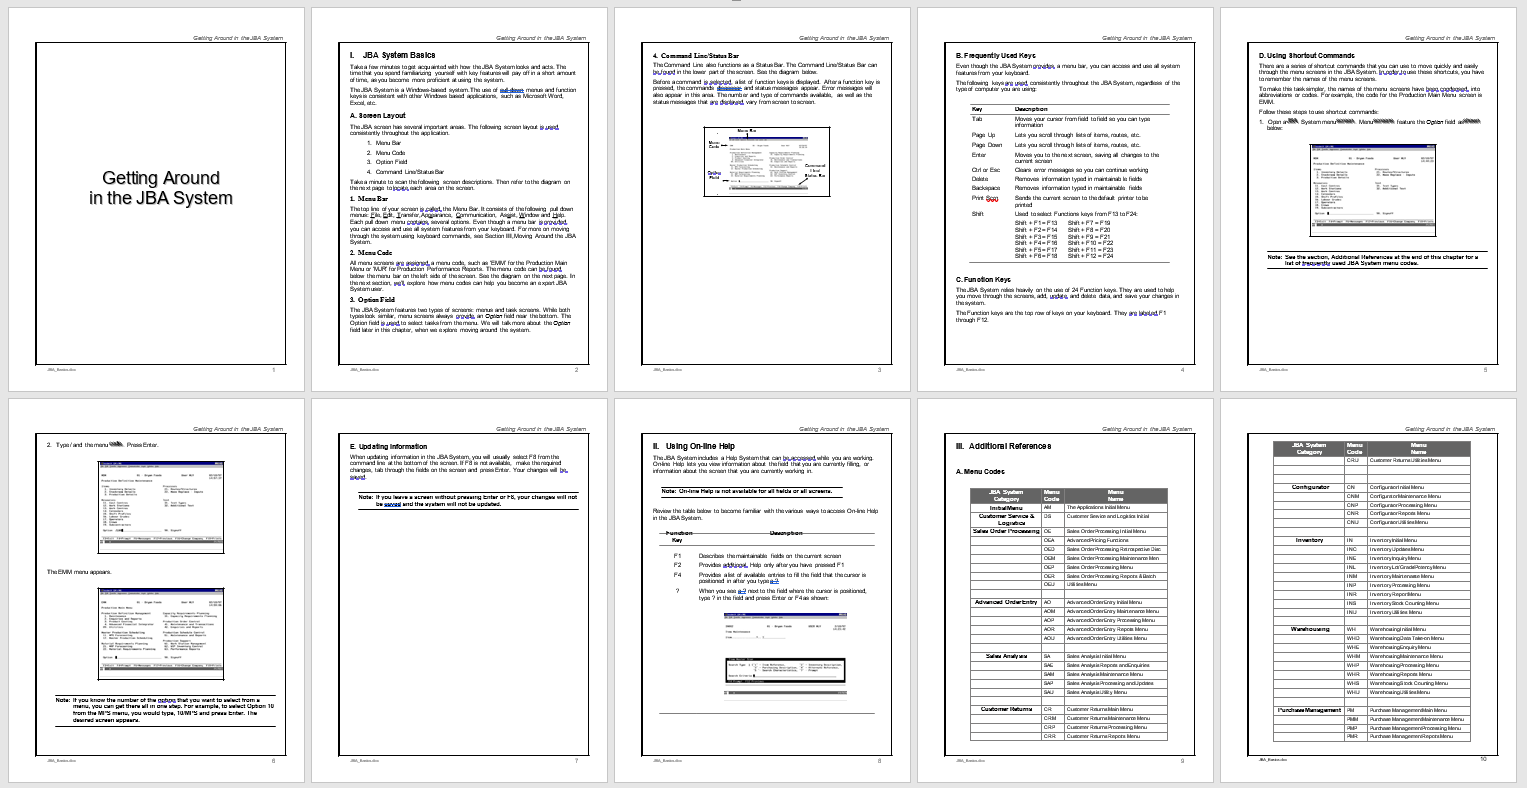 User guide to the JBA System21 application on the AS400 2